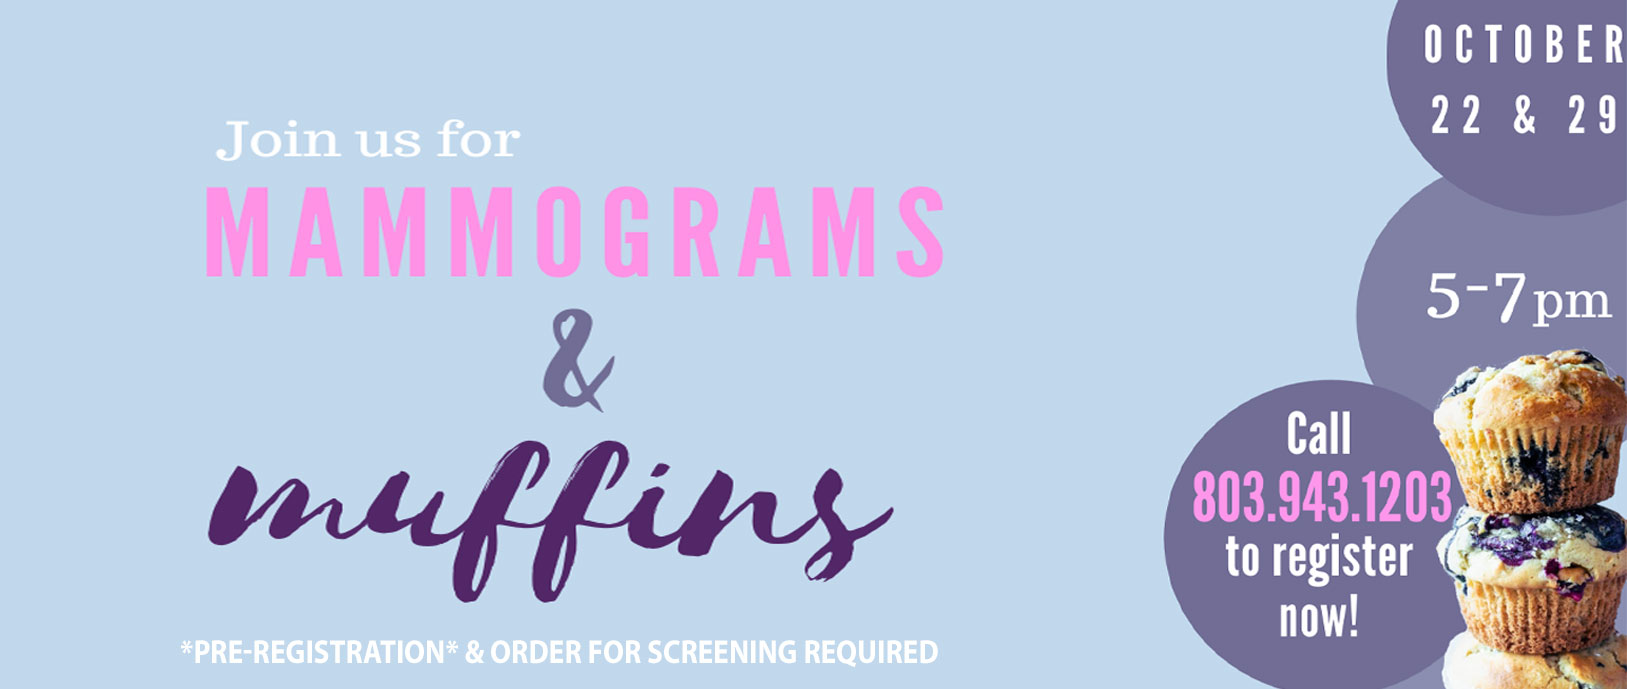 Join us for Mammograms & Muffins October 22 & 29 5pm - 7pm Call 803.943.1203 to register now  *PRE-REGISTRATION* & ORDER FOR SCREENING REQUIRED